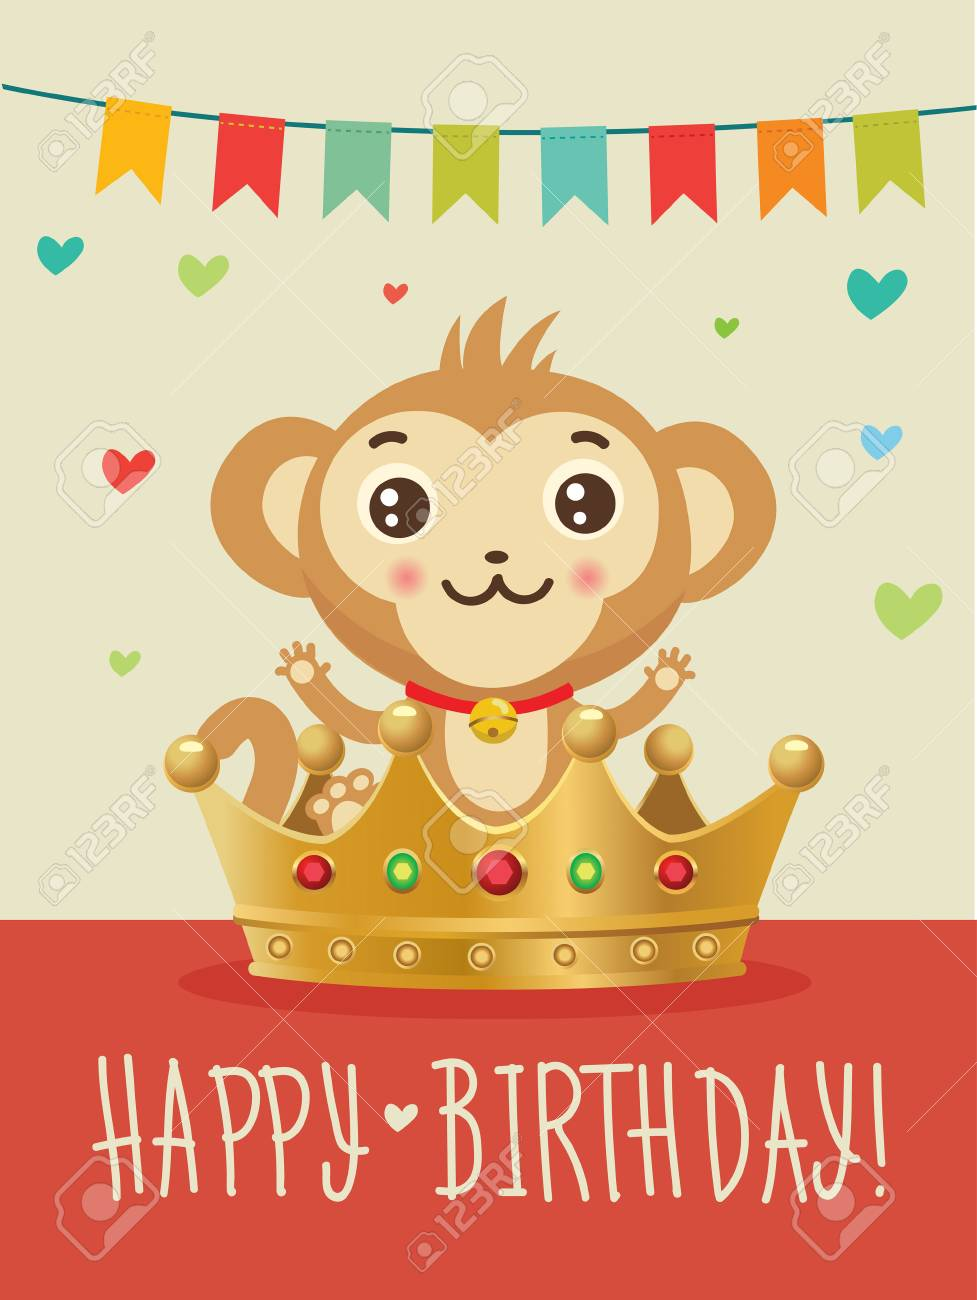 Happy Birthday To You Wish Humour Friendship Greeting Card Image